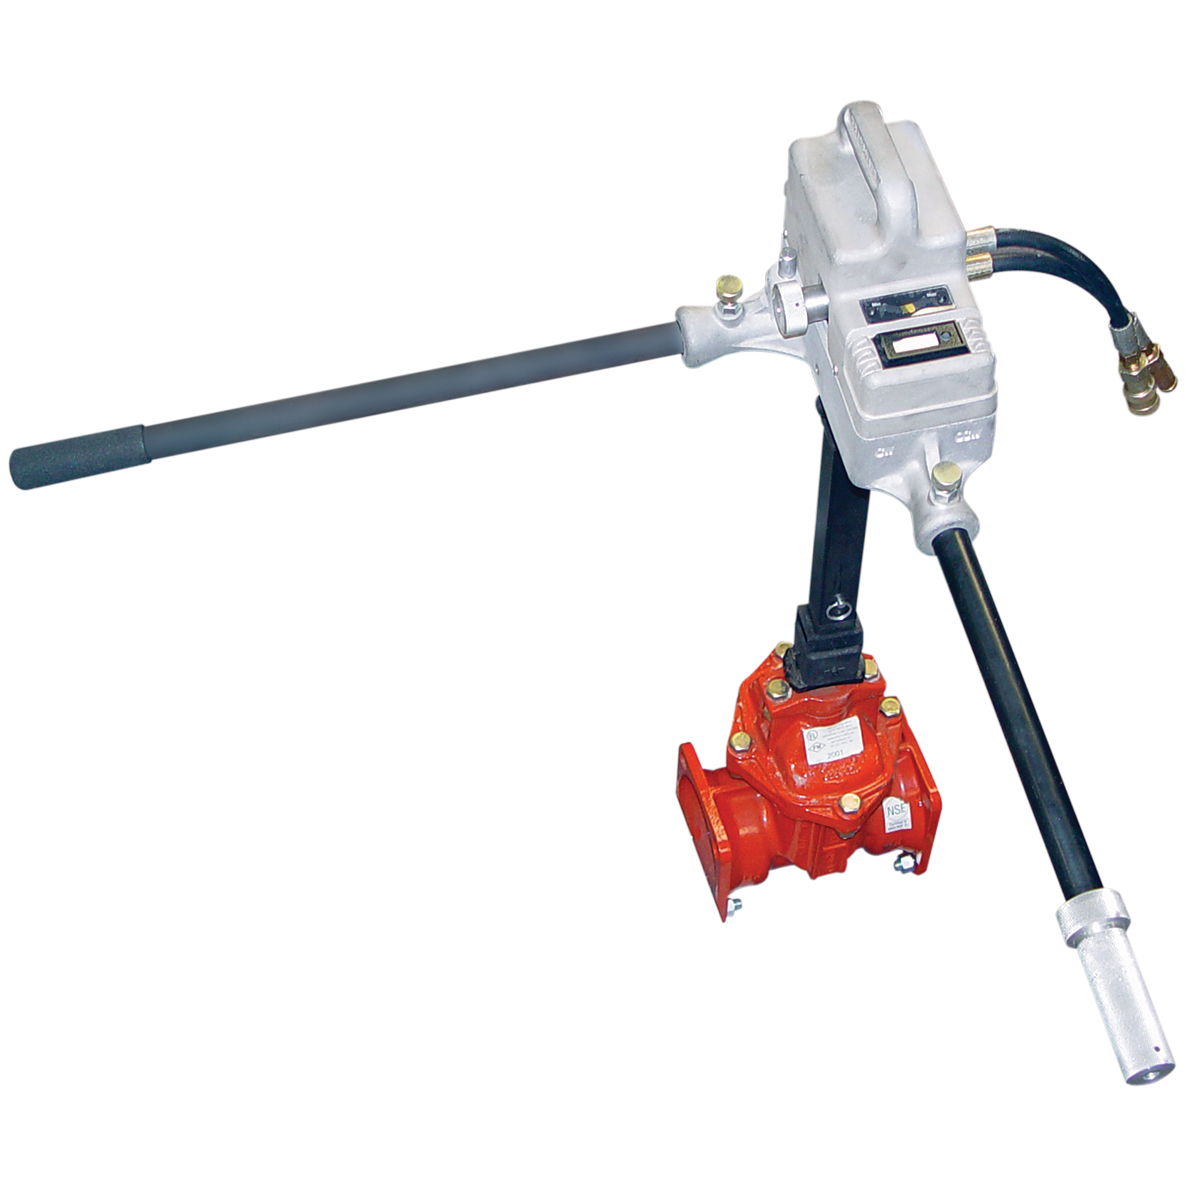 THE EXERCISER - Valve and hydrant exerciser